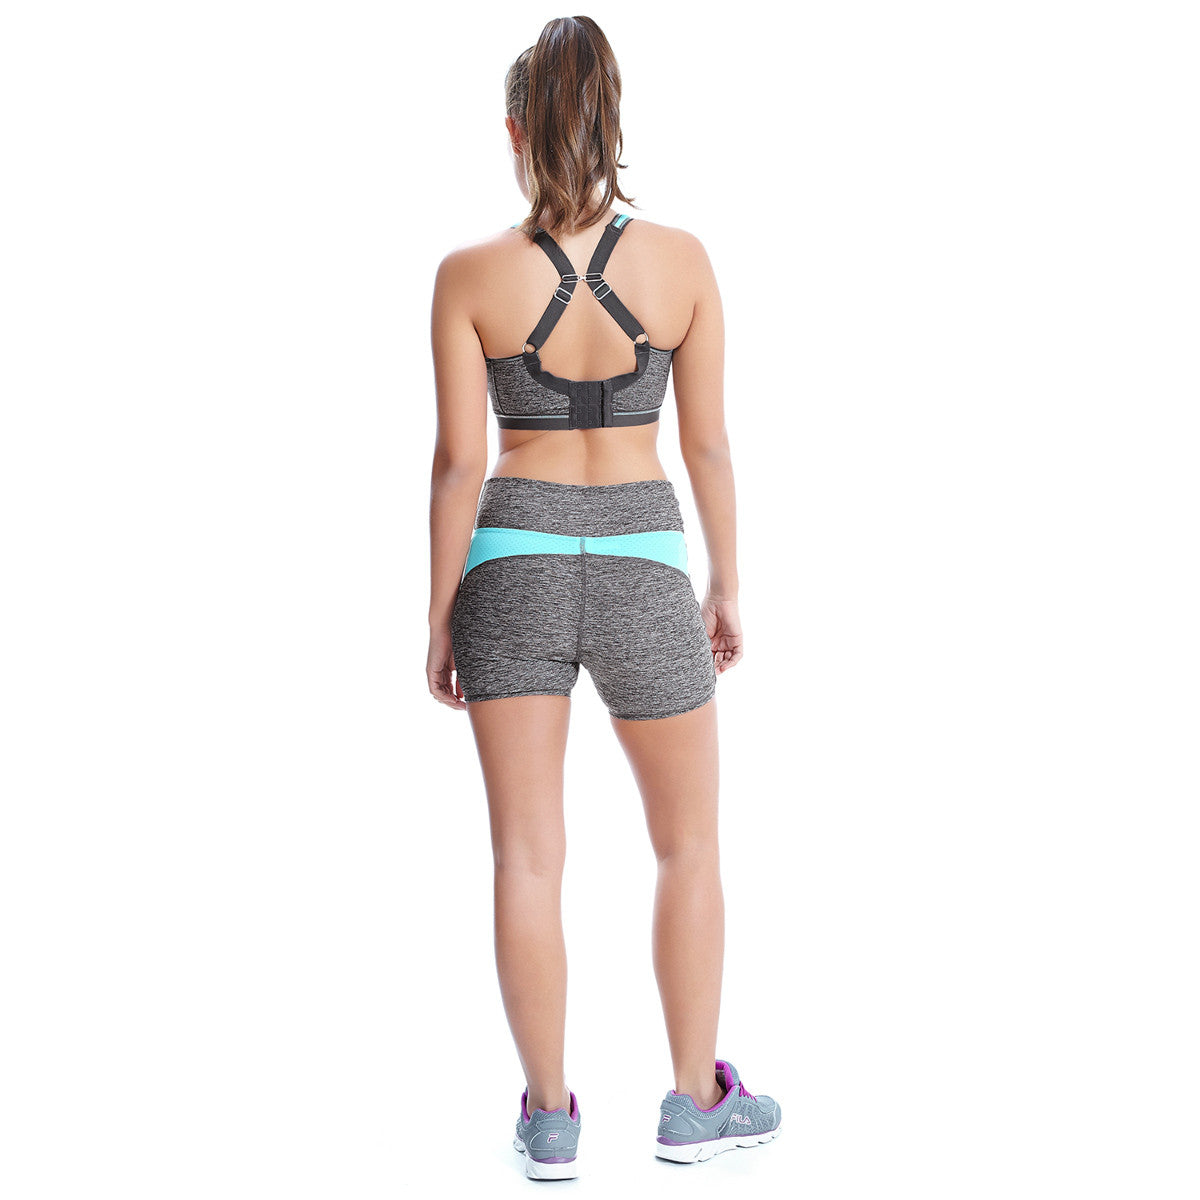 82b5e01f13 Freya Epic Sports Bra Underwired Carbon Grey Crop Top